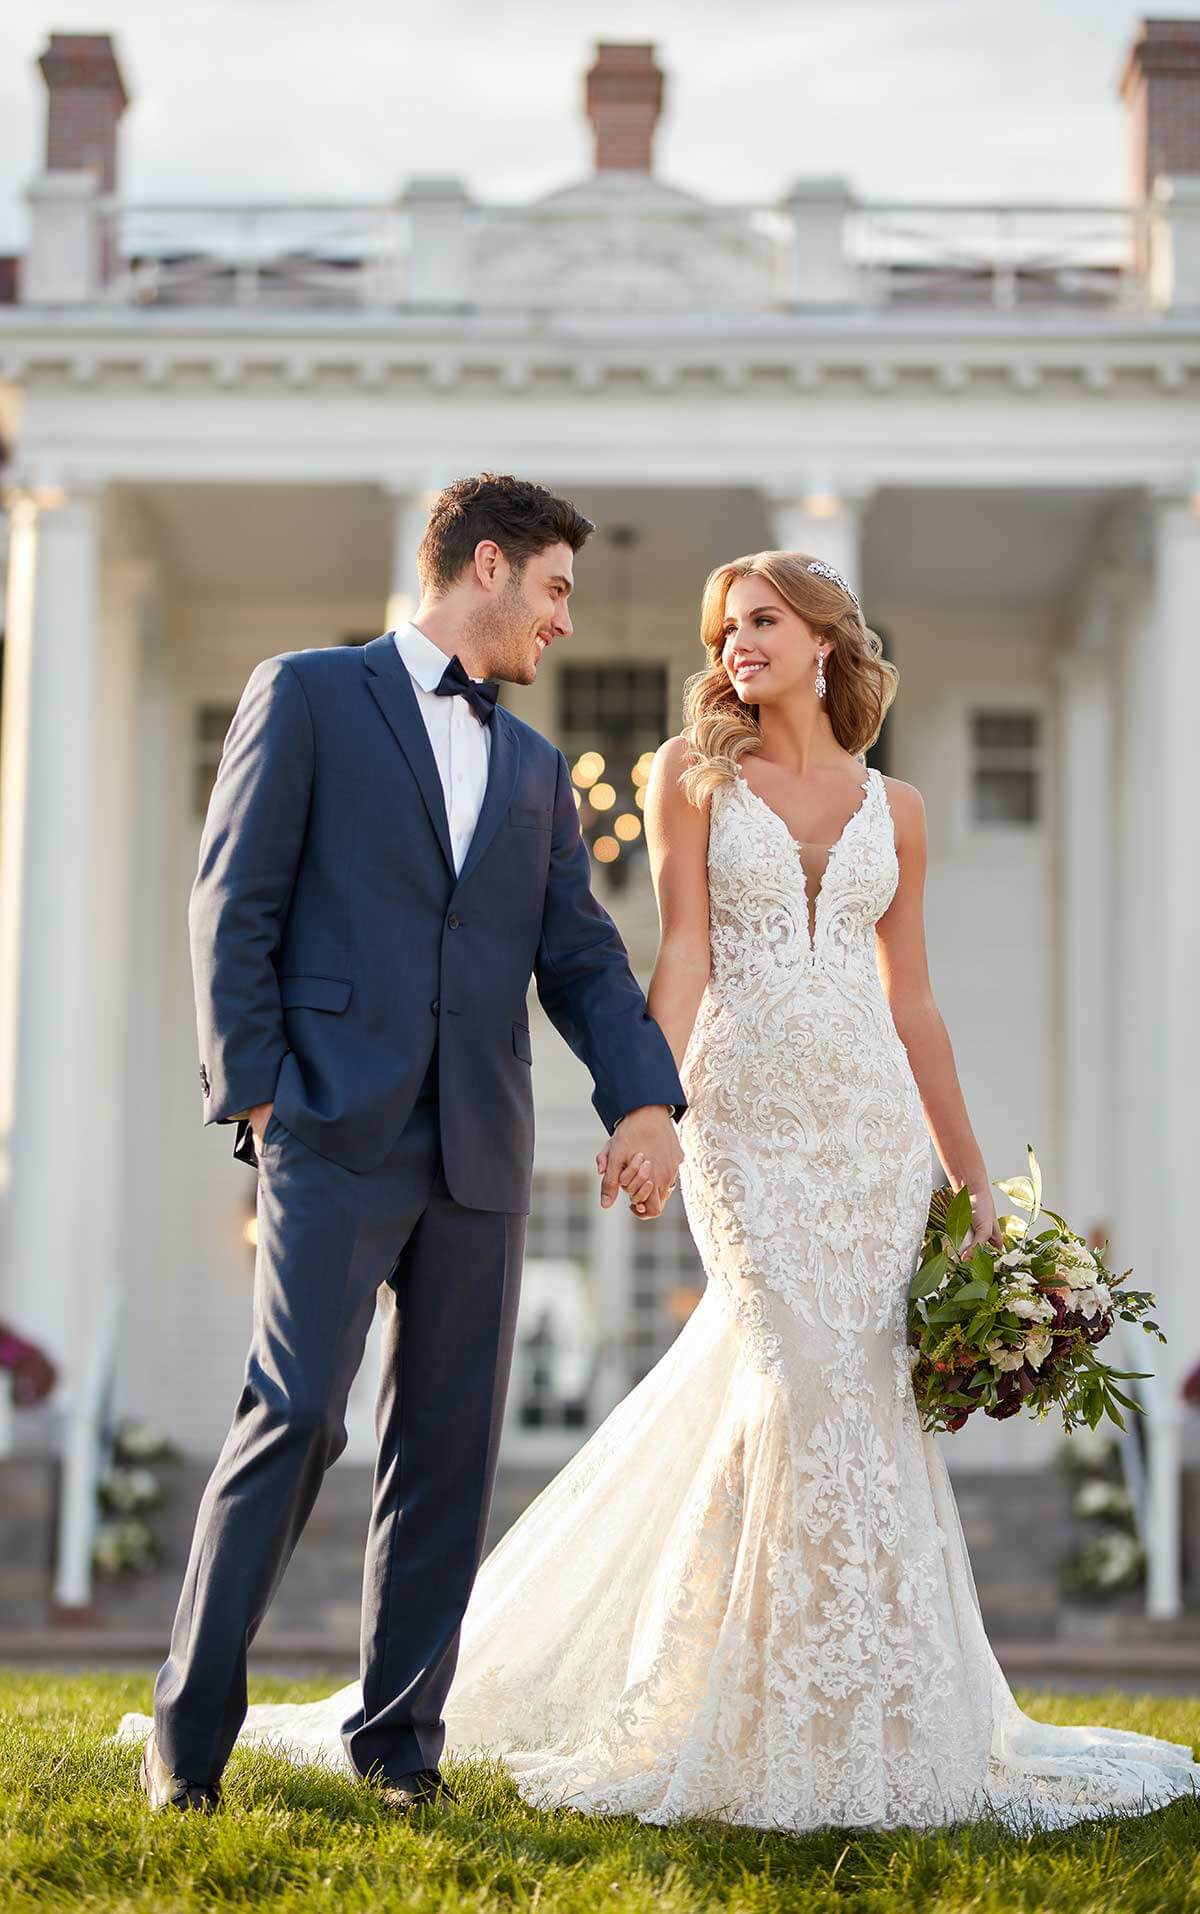 Sell Wedding Dress.Where To Sell Wedding Dress In Kansas City